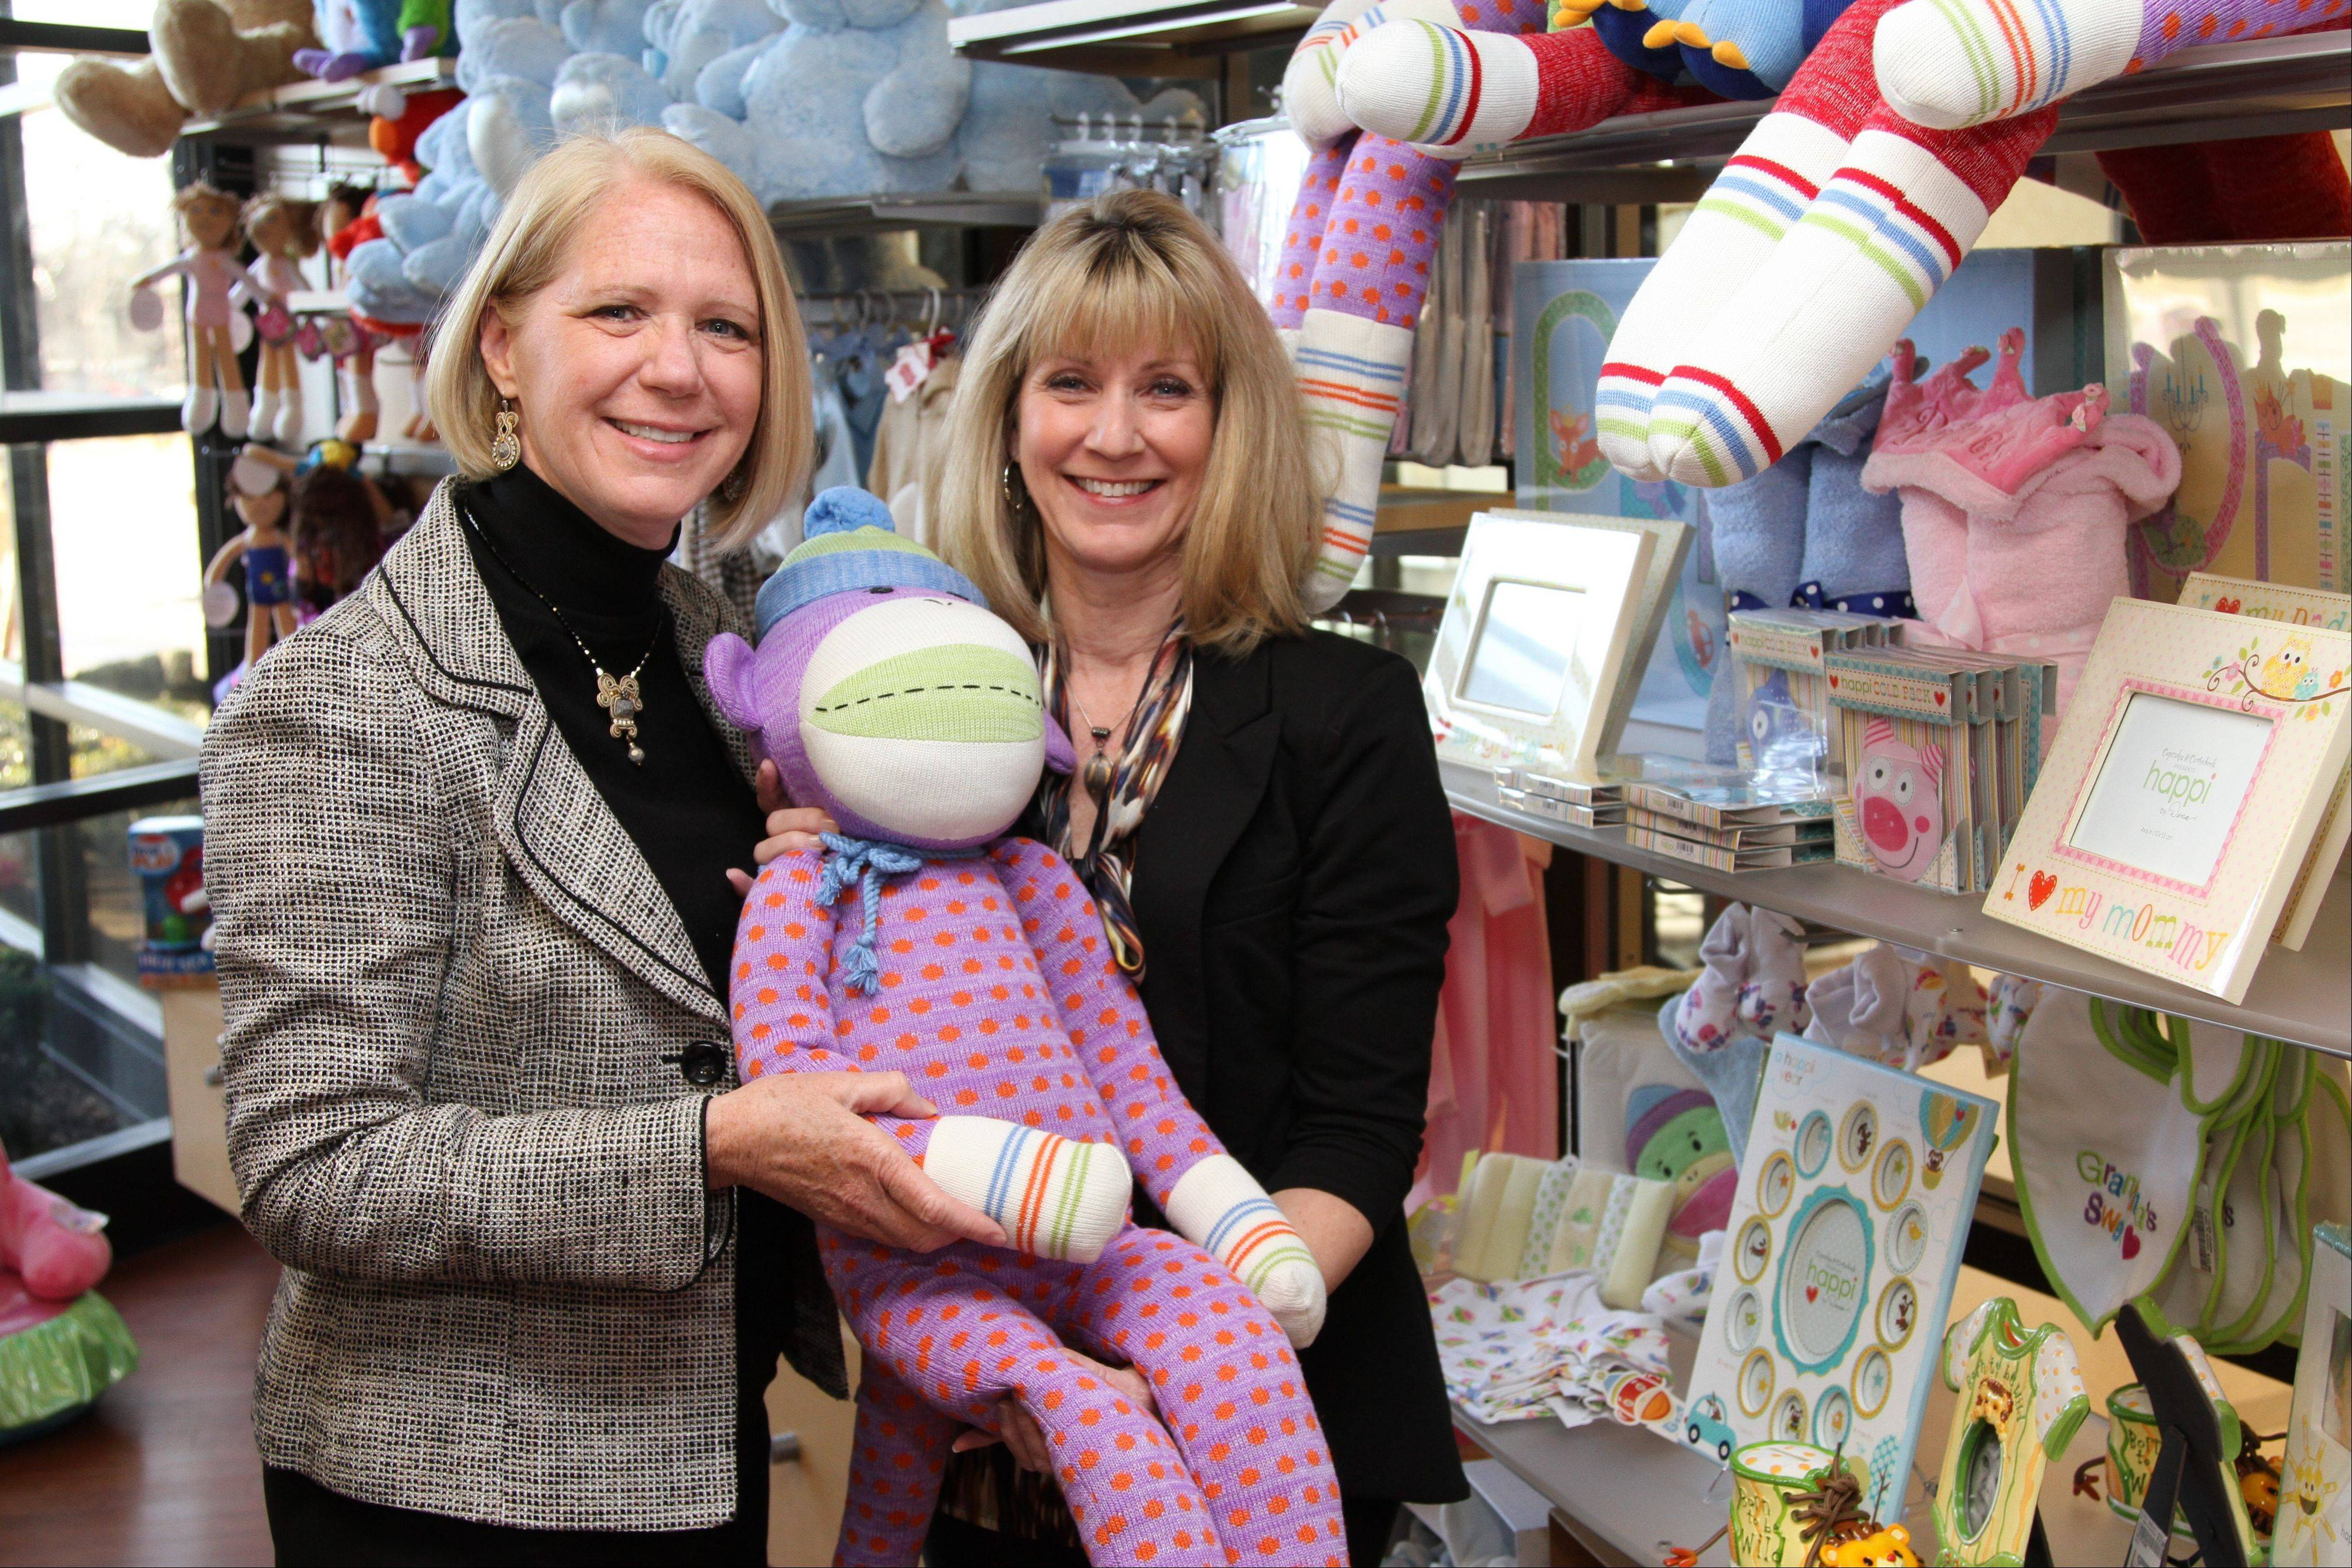 Alexian Brothers foundation members Suzanne Frey and Janice Selden are with gifts coming in for the baby shower for the new Alexian Brothers Women and Children's Hospital in Hoffman Estates.